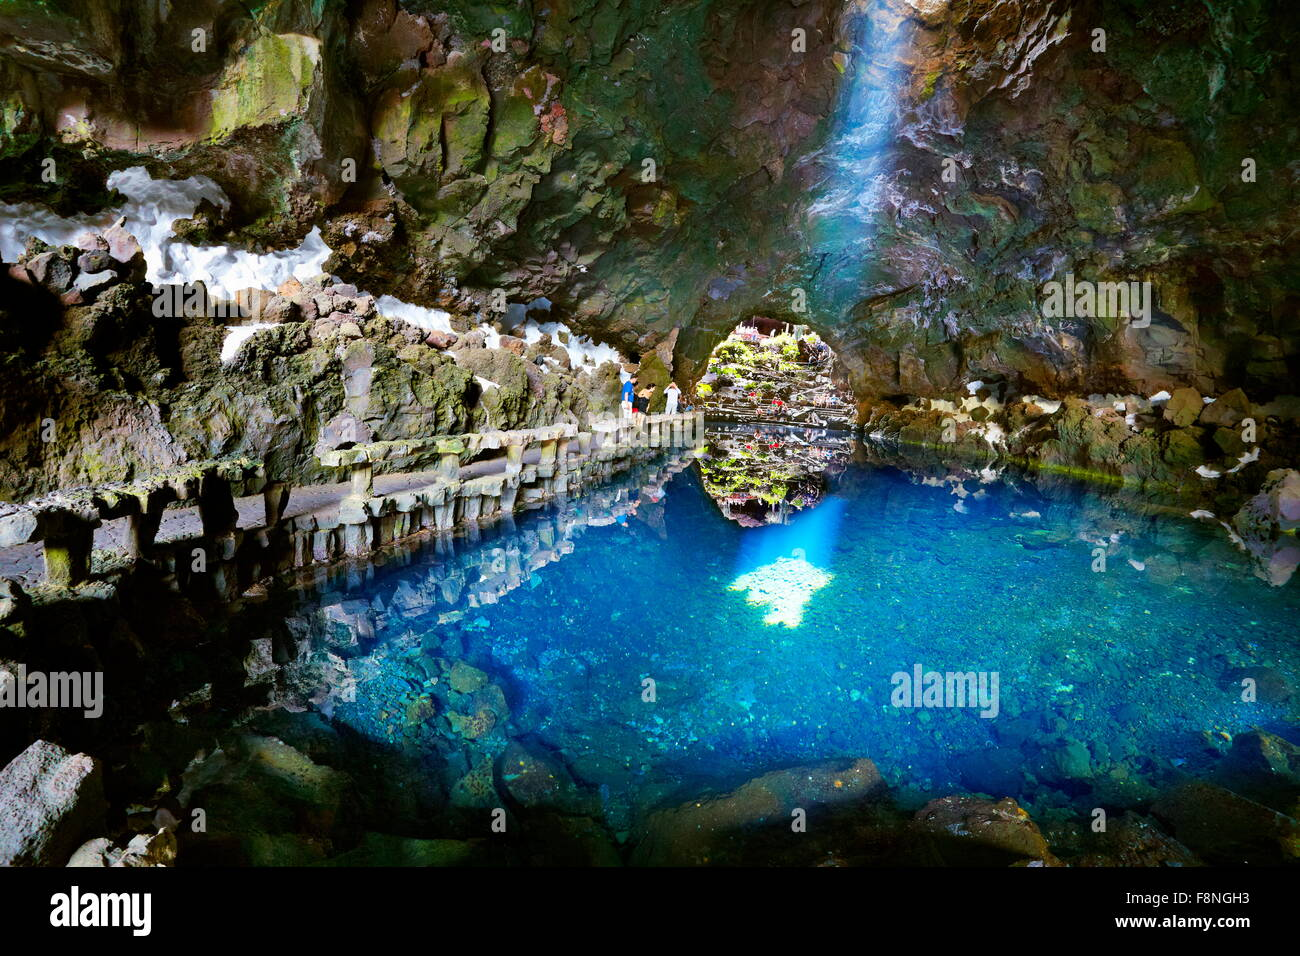 Lanzarote Island, Jameos del Aqua, lake in volcanic cave, Canary Islands, Spain - Stock Image